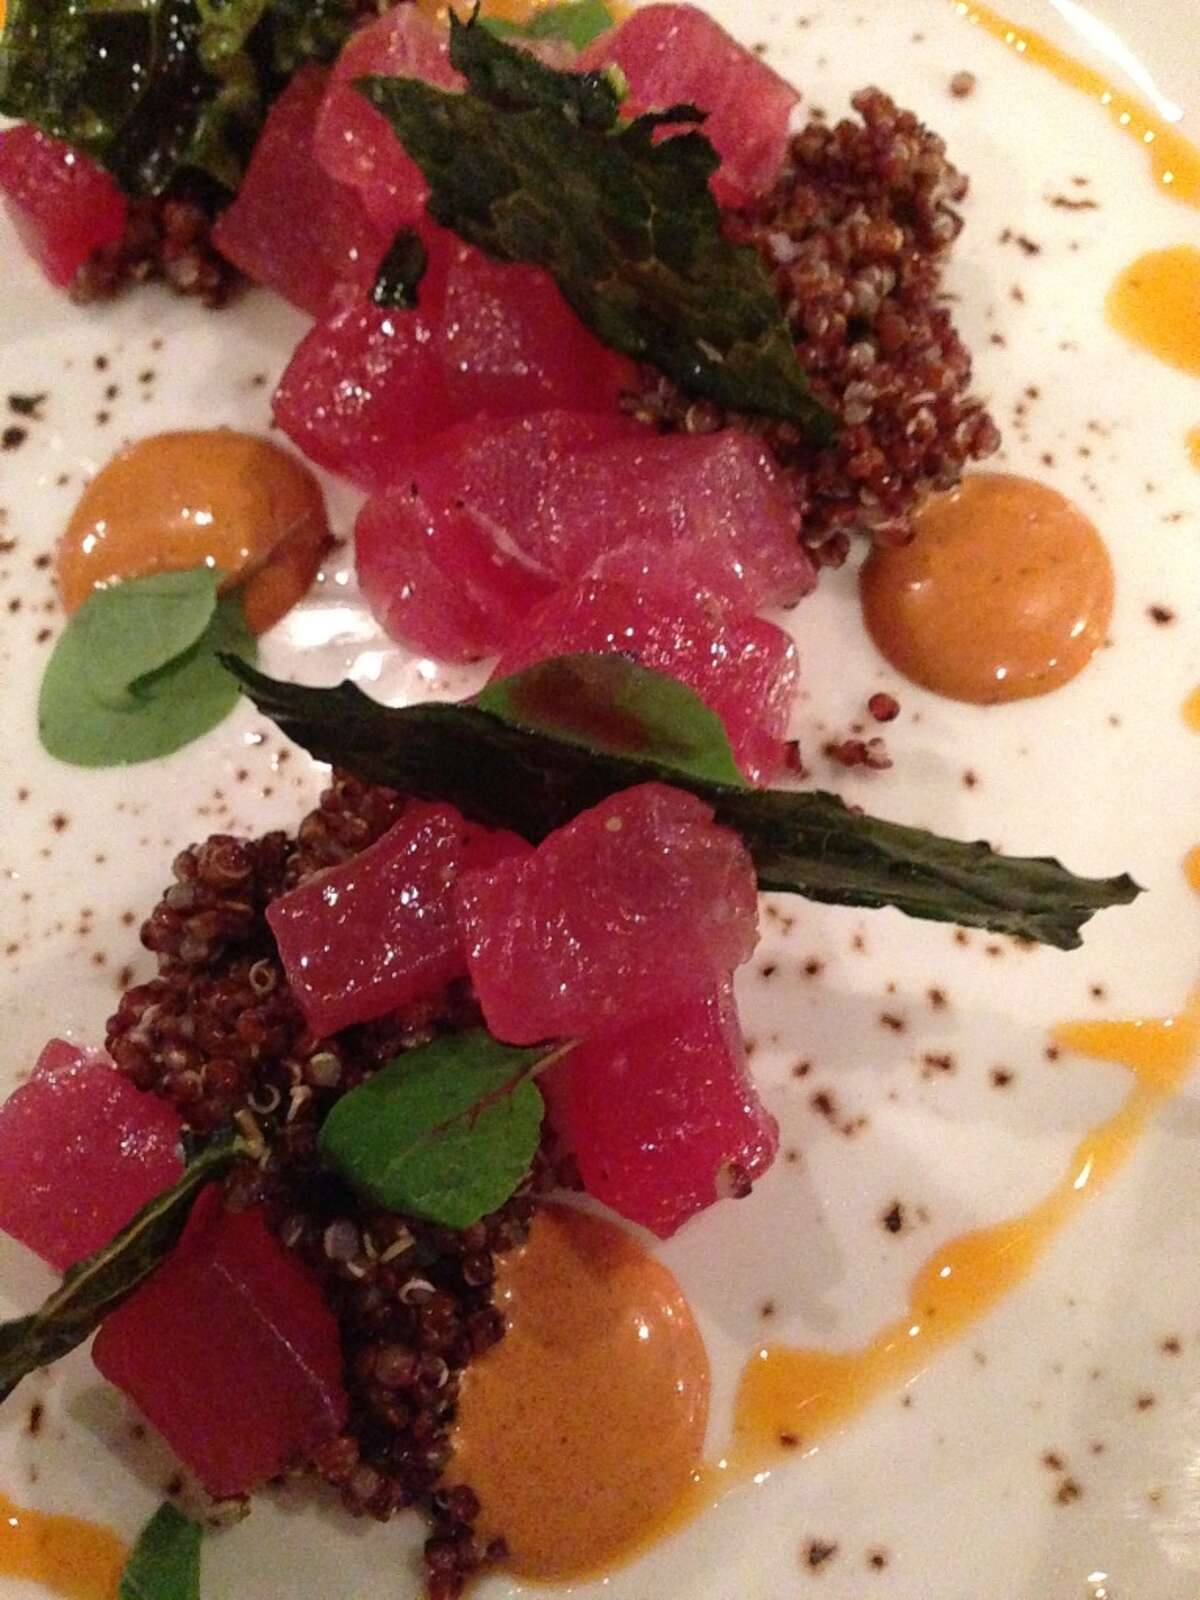 Tuna tartare with red quinoa, harissa oil, and Tuscan kale at Saltair Seafood Kitchen, 3029 Kirby. (Photo: Greg Morago)